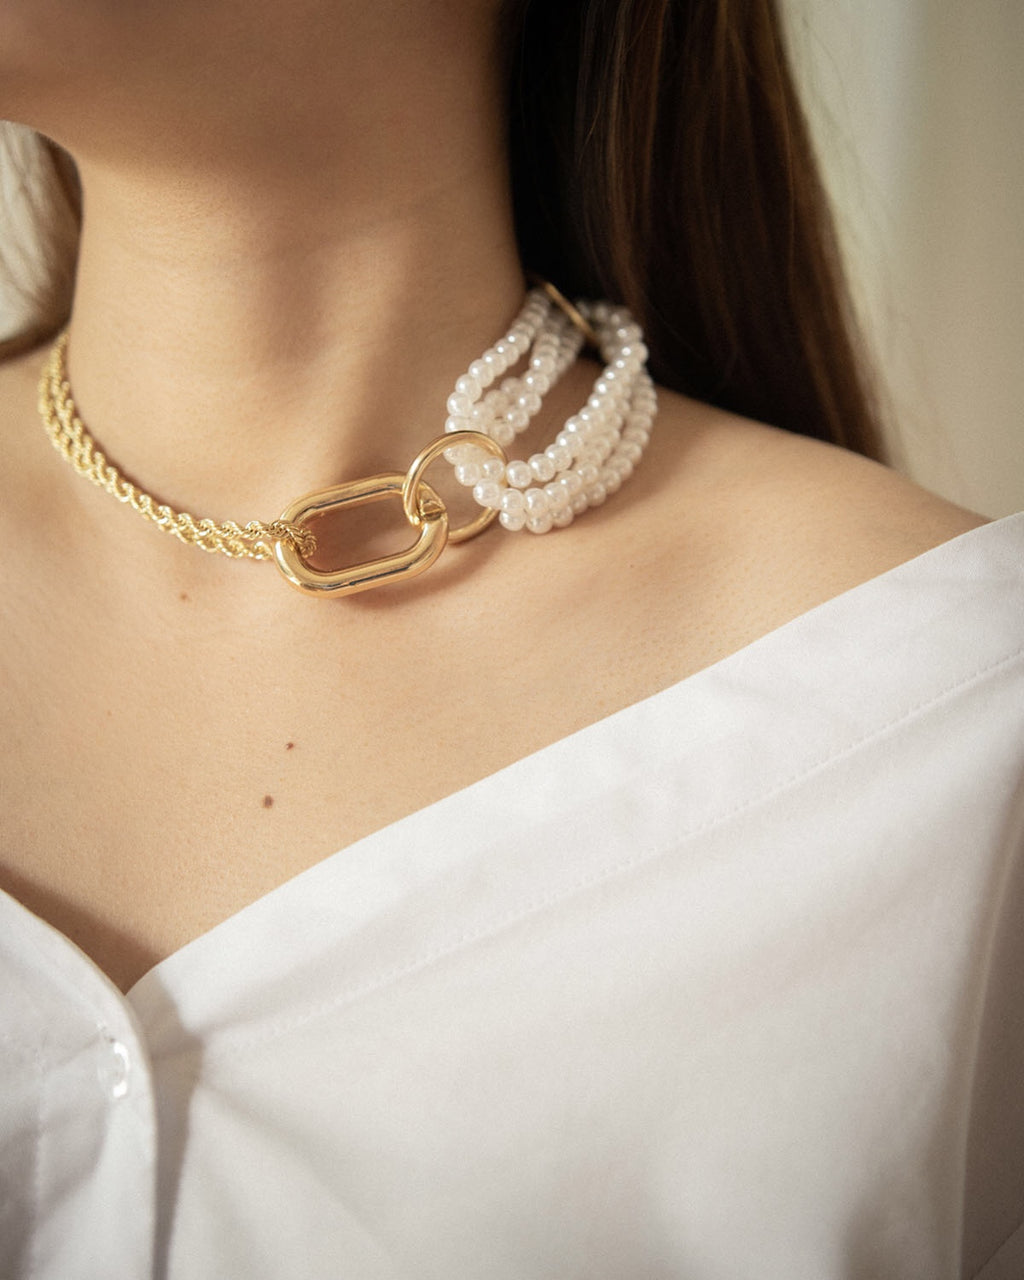 Bold chain necklace that show off bare plunging neckline - The Hexad's Isabeau necklace